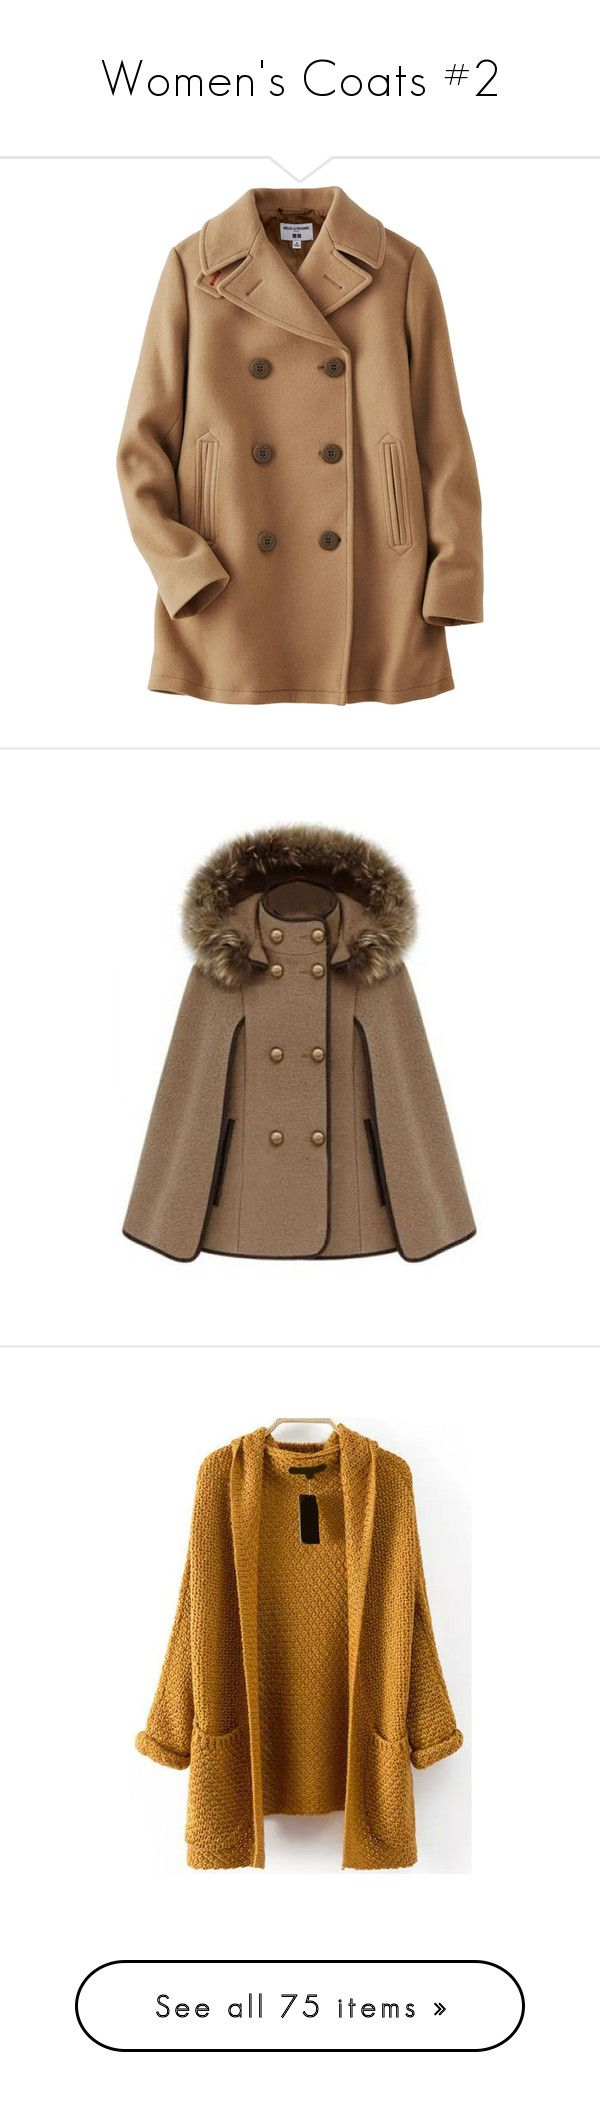 """""""Women's Coats #2"""" by nathalialopes-1 ❤ liked on Polyvore featuring outerwear, coats, jackets, coats & jackets, casacos, beige, pea jacket, uniqlo coats, beige coat and brown peacoat"""